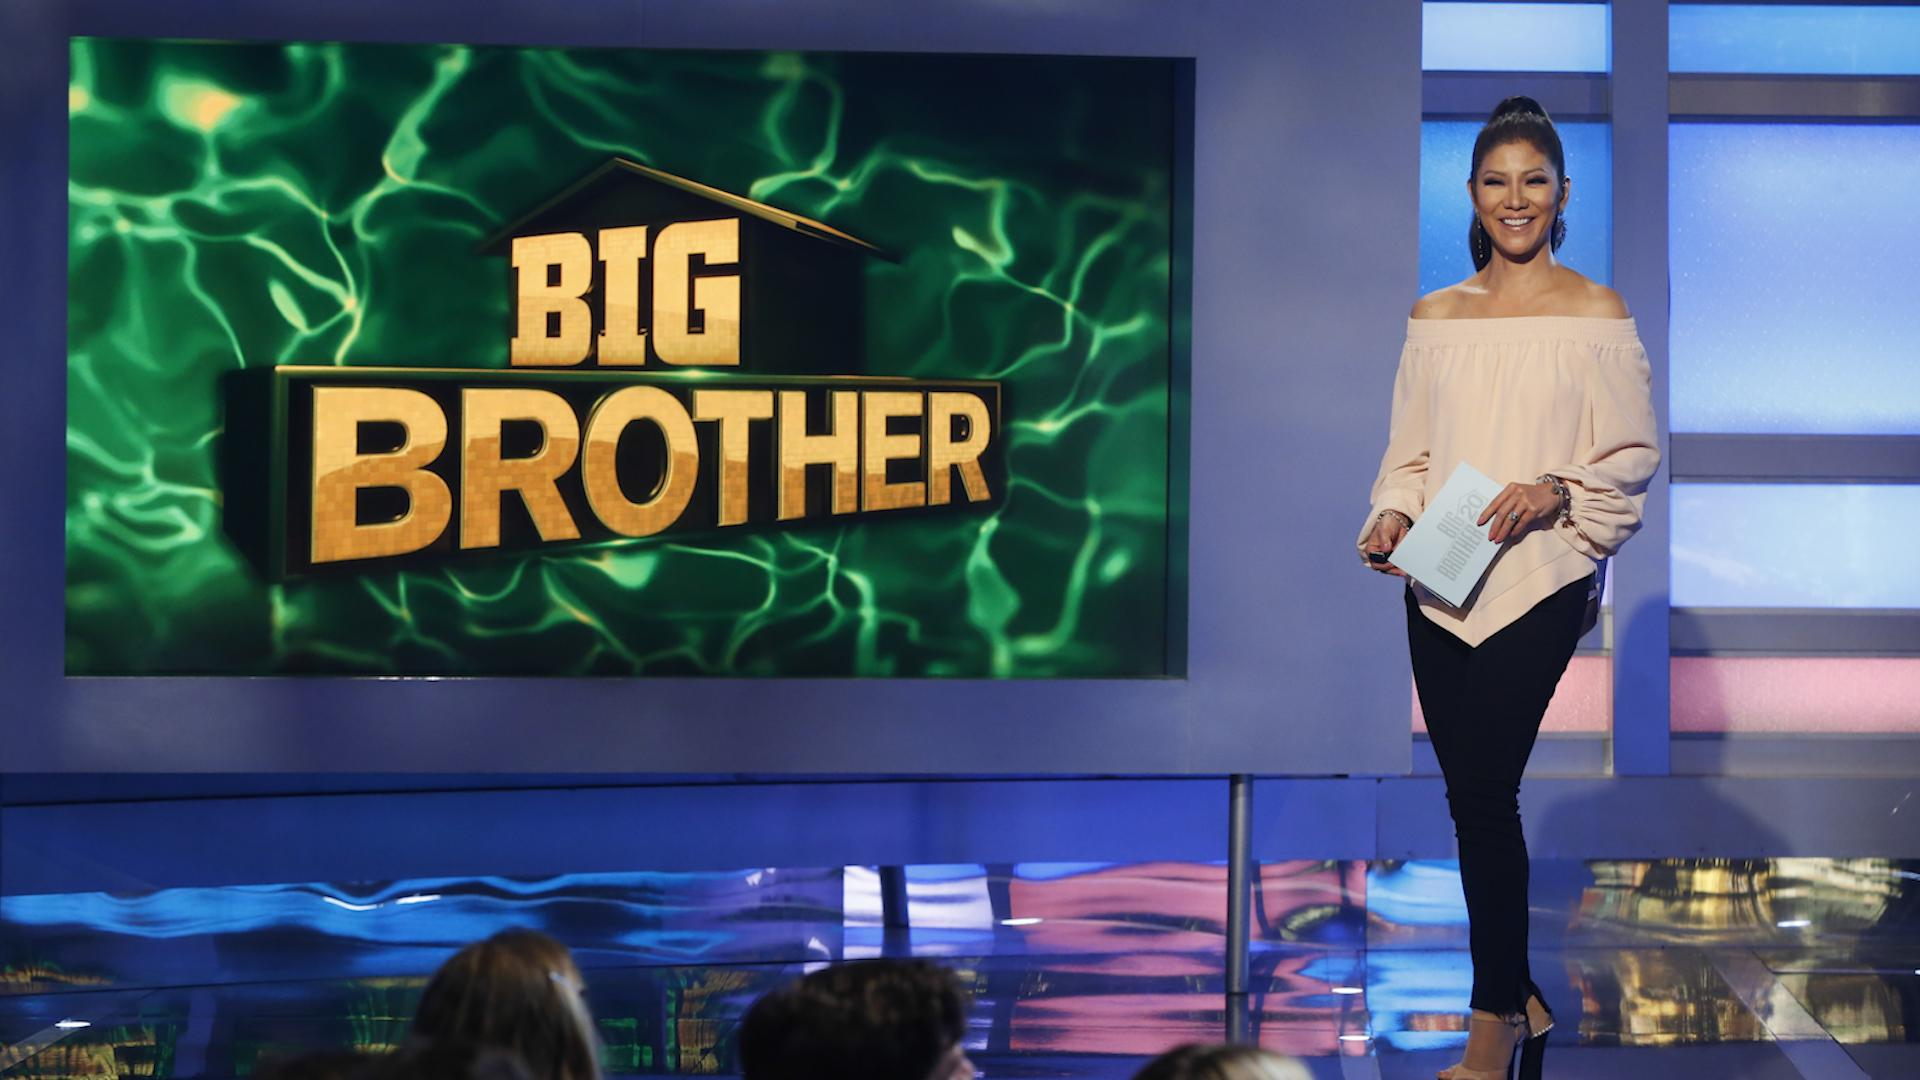 Big Brother 21 Episode 12 Preview